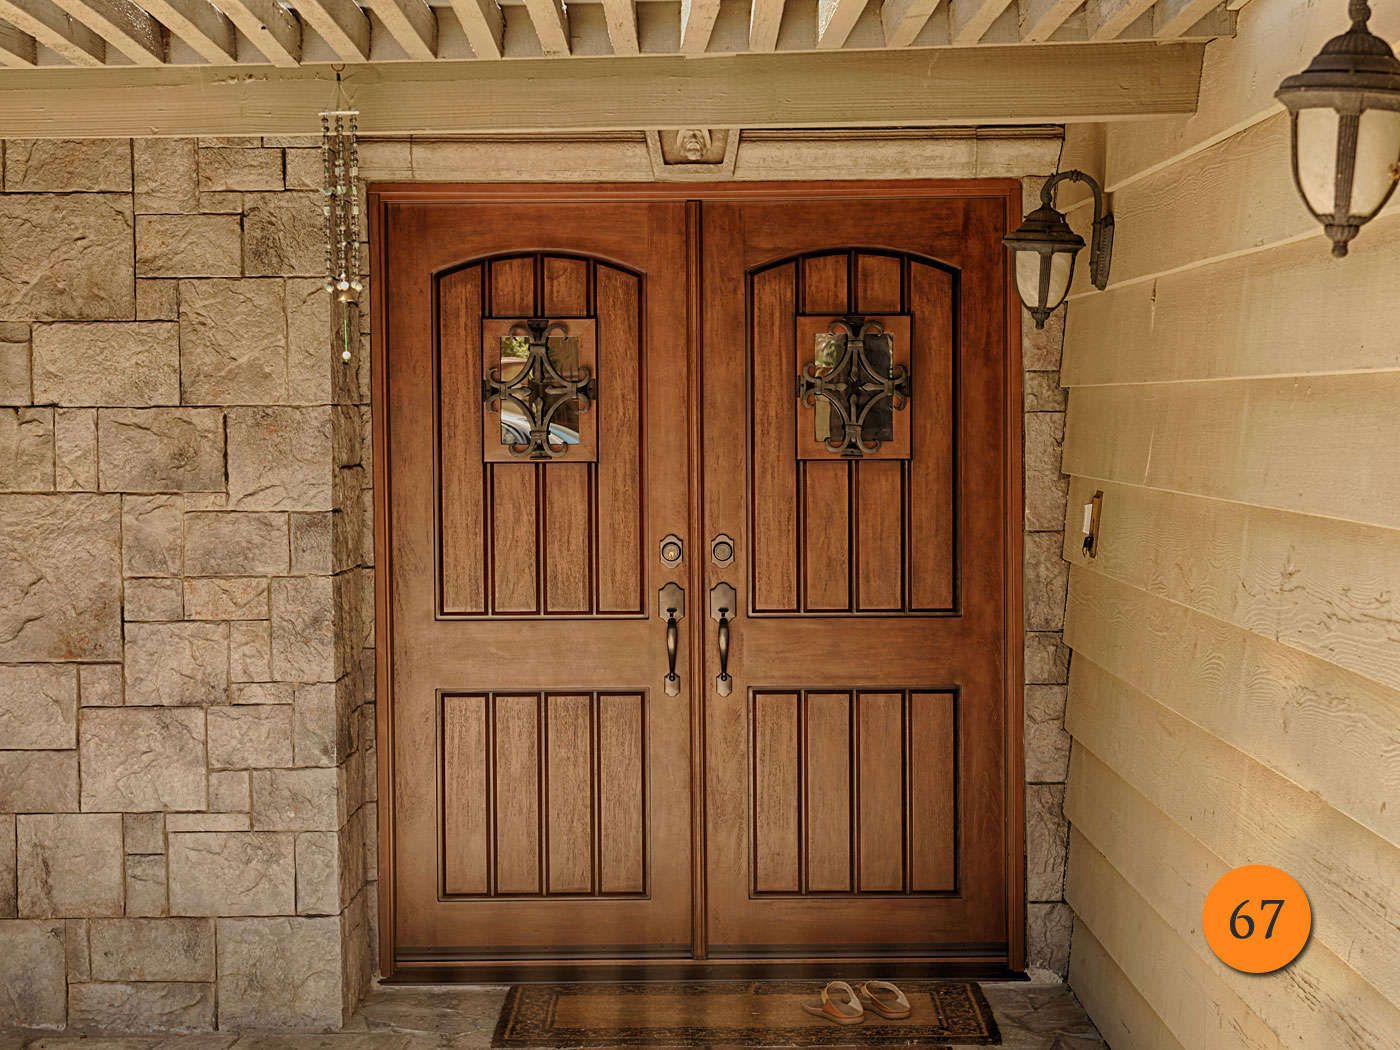 Jeld Wen X Estate Collection Double Entry Doors Rustic Style Fiberglass Arch Top Model With Seville Speakeasy Copper Creek Heritage Hardware In Tuscon